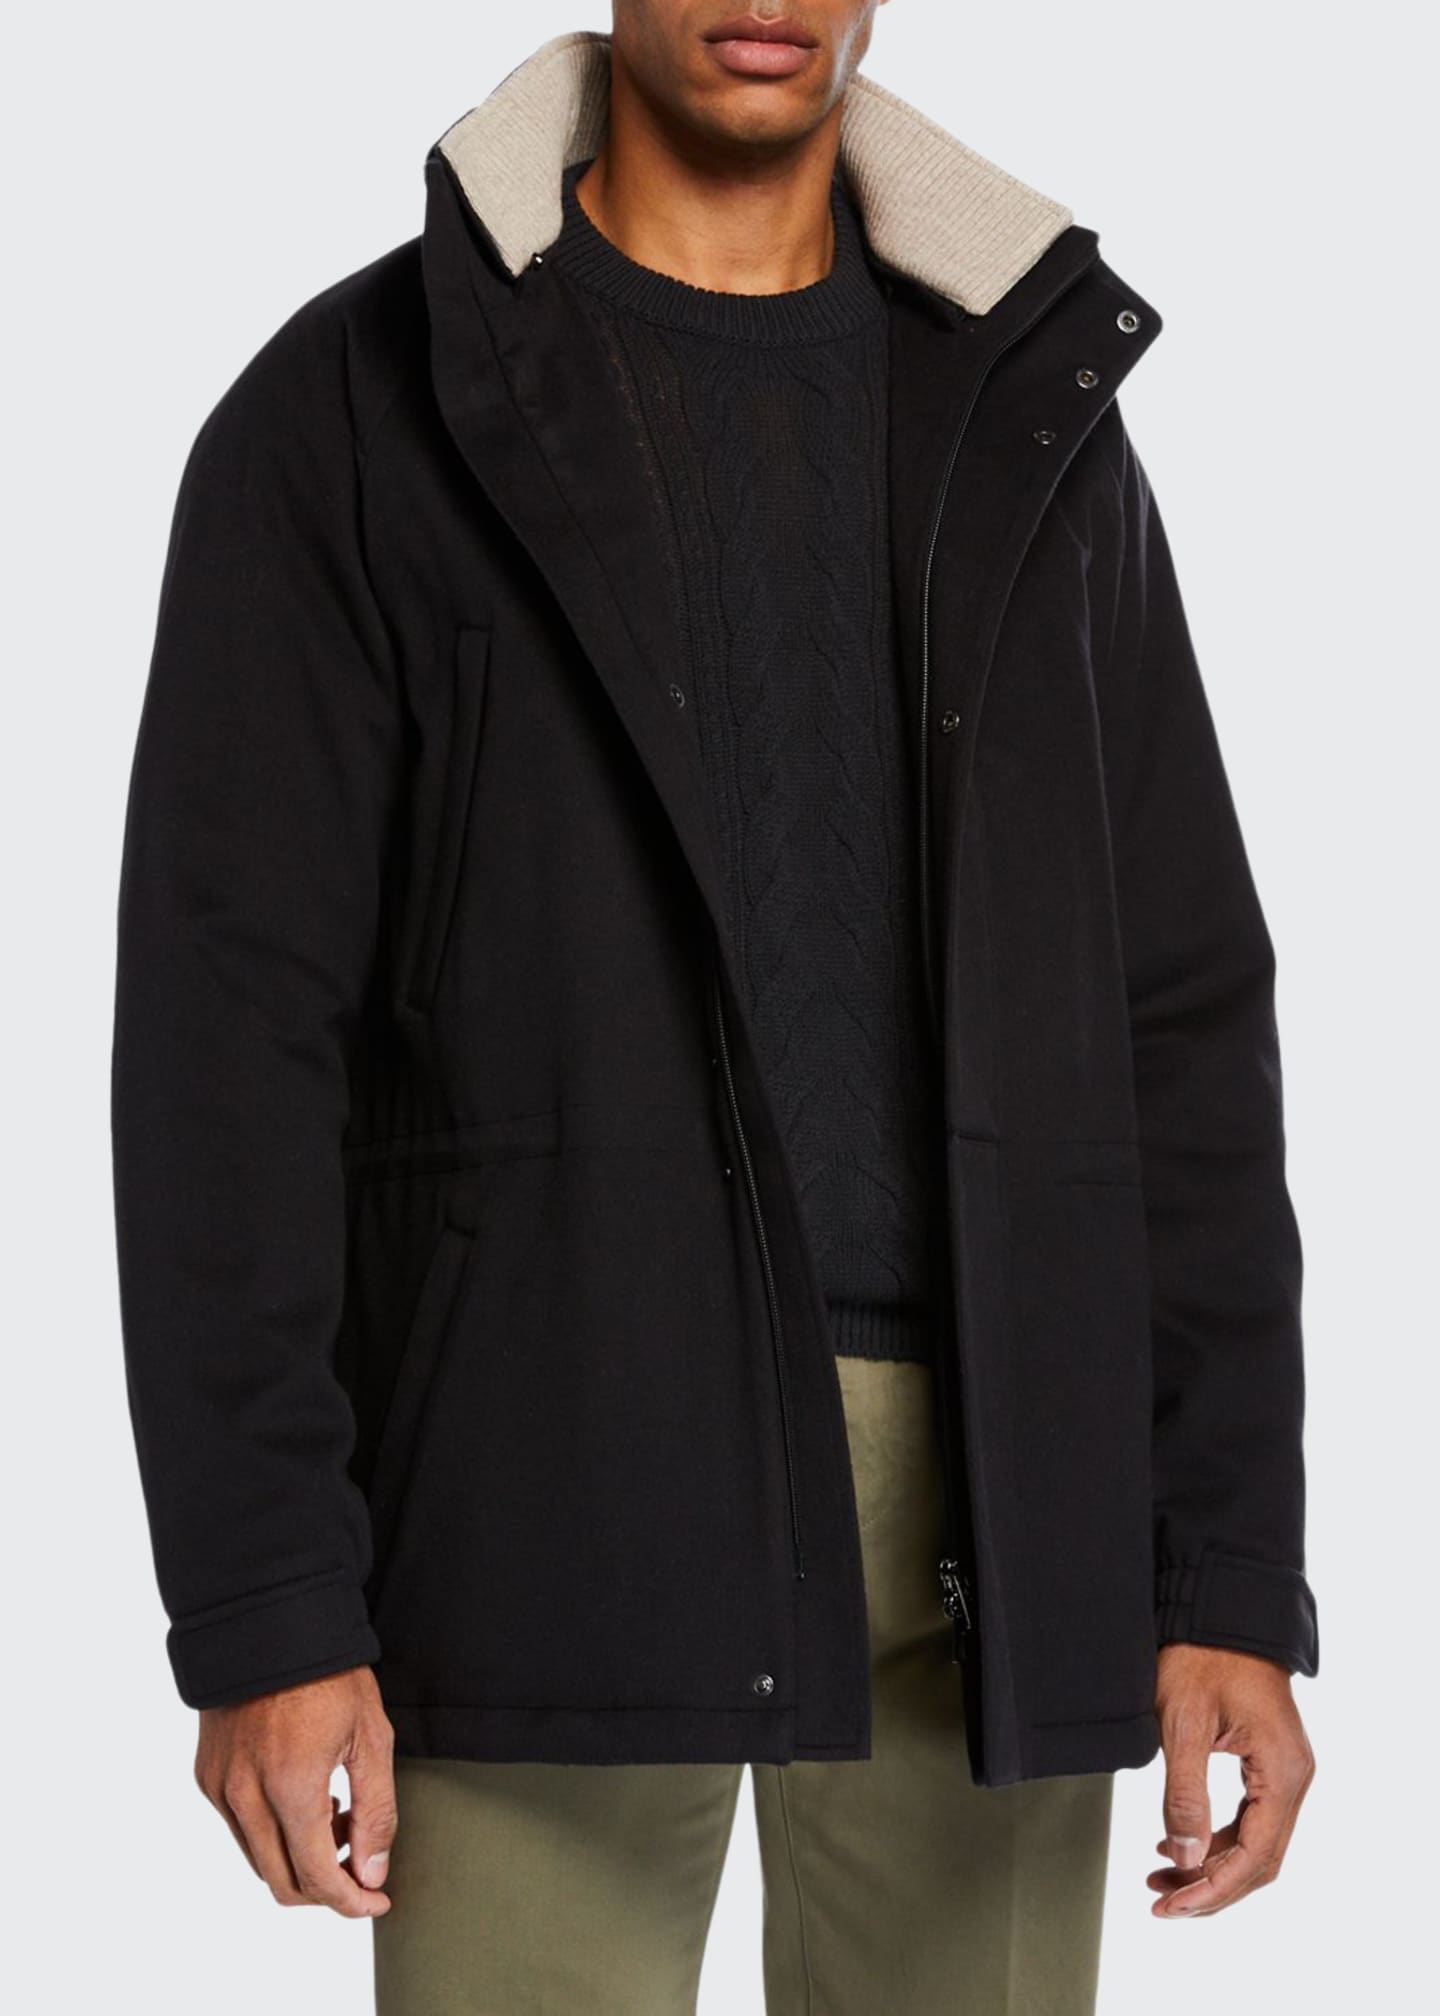 Loro Piana Men's Icer Cashmere Coat